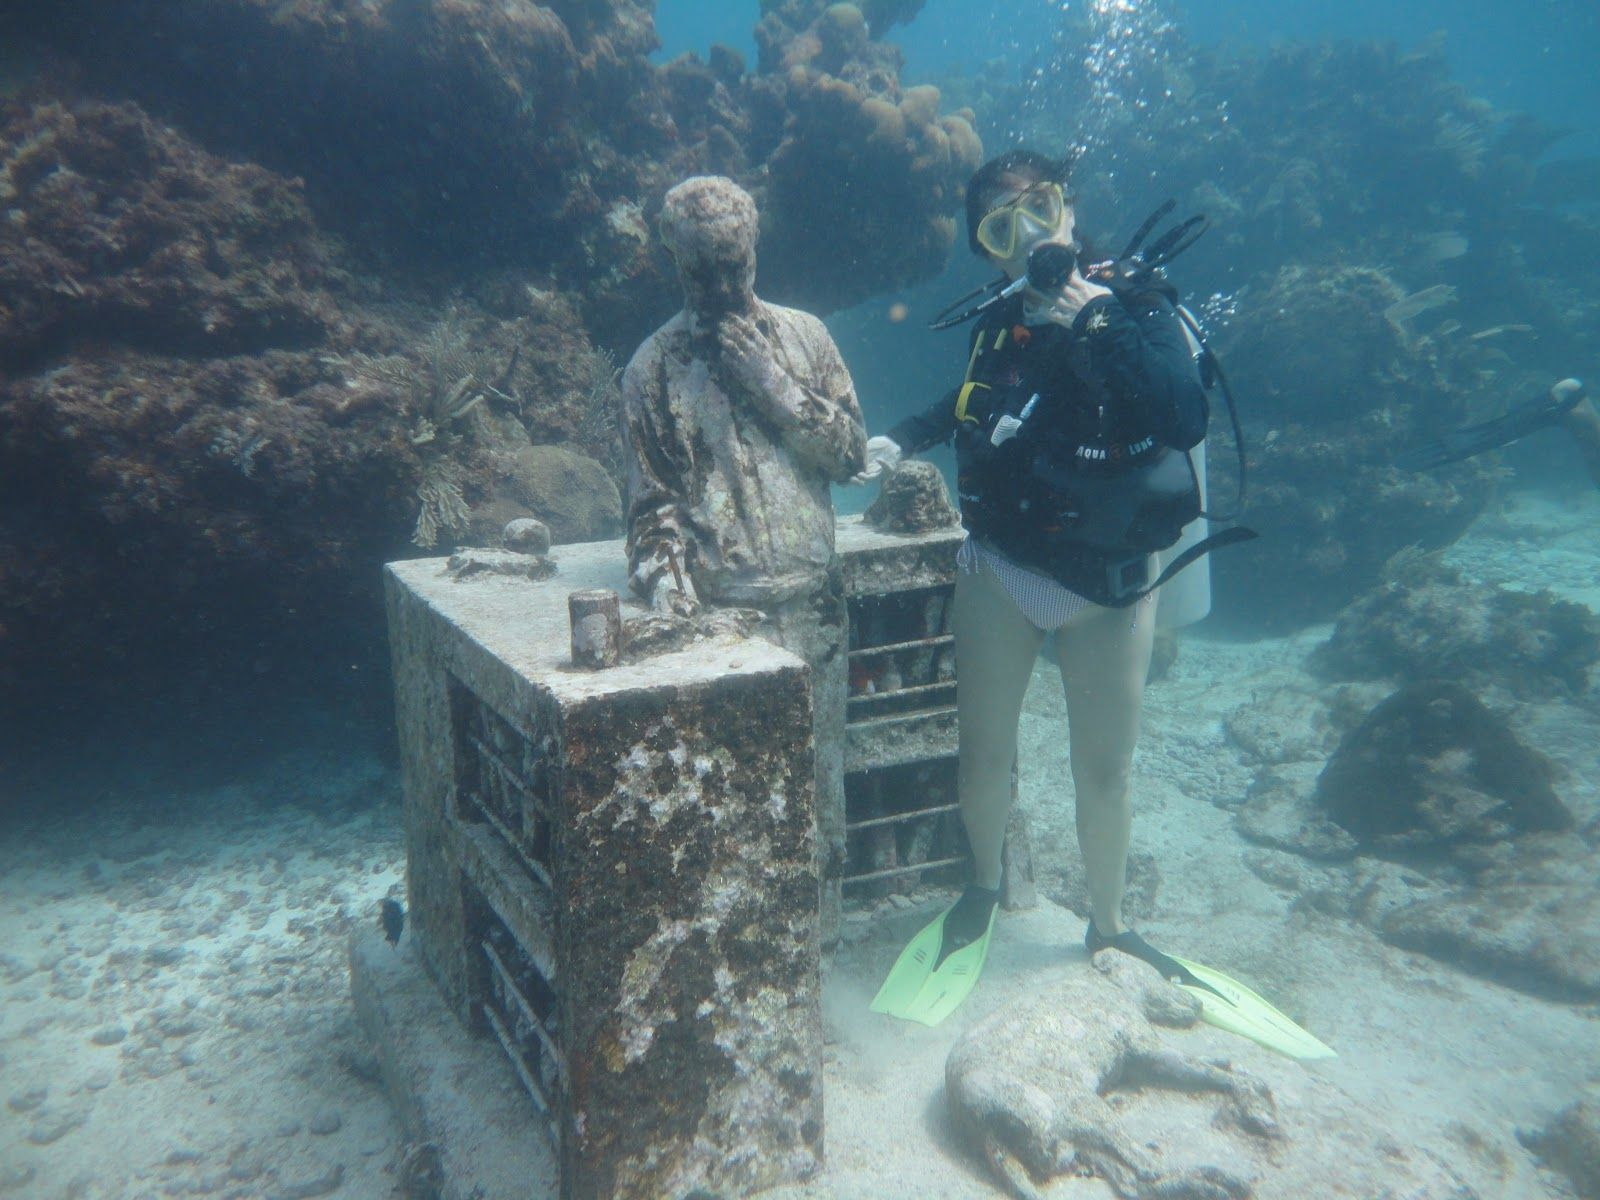 Pin by Gretchen Collis on Underwater photography   Pinterest